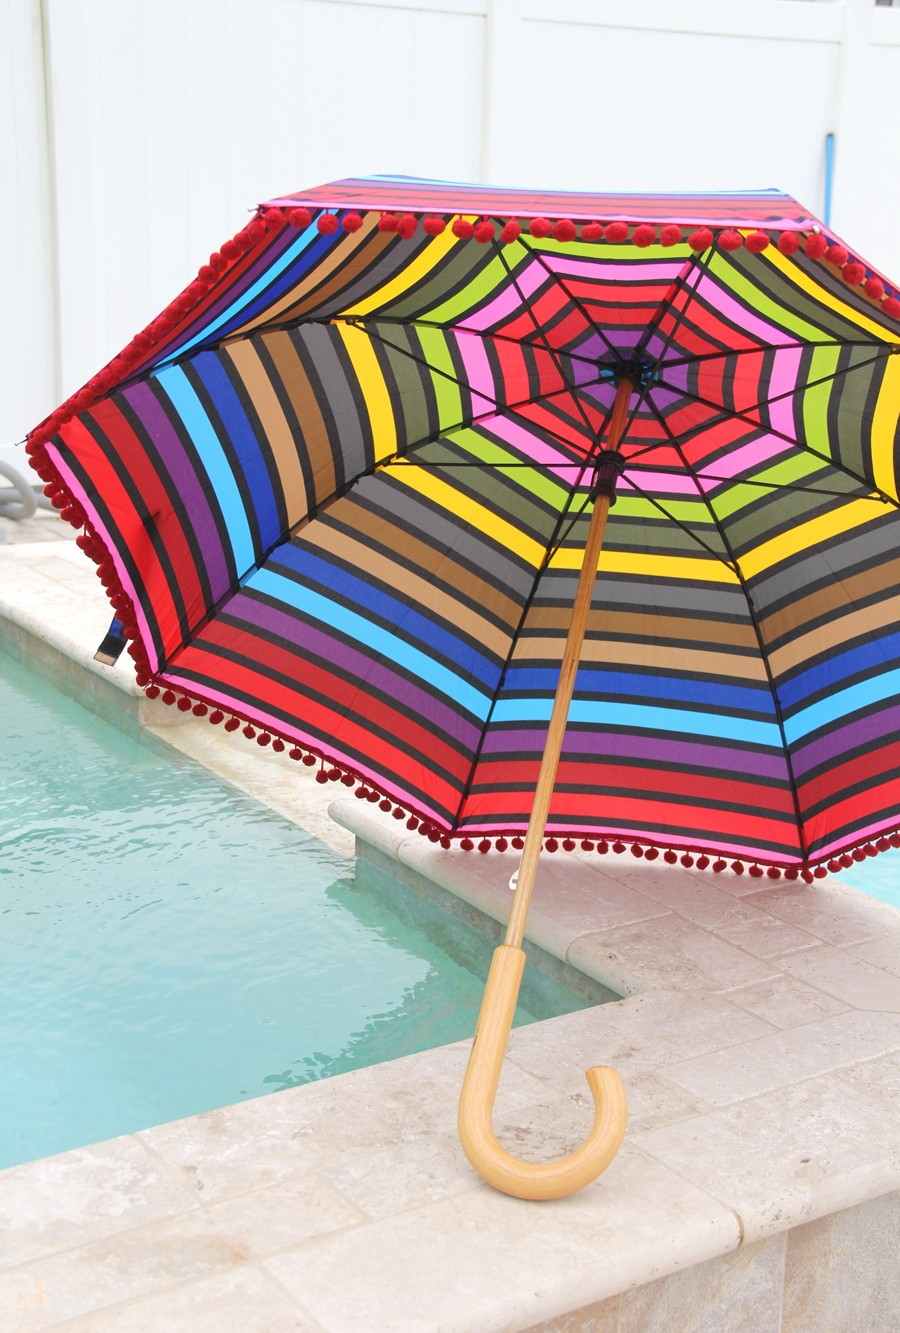 add pom poms to your umbrella for a fun, decorative trim!